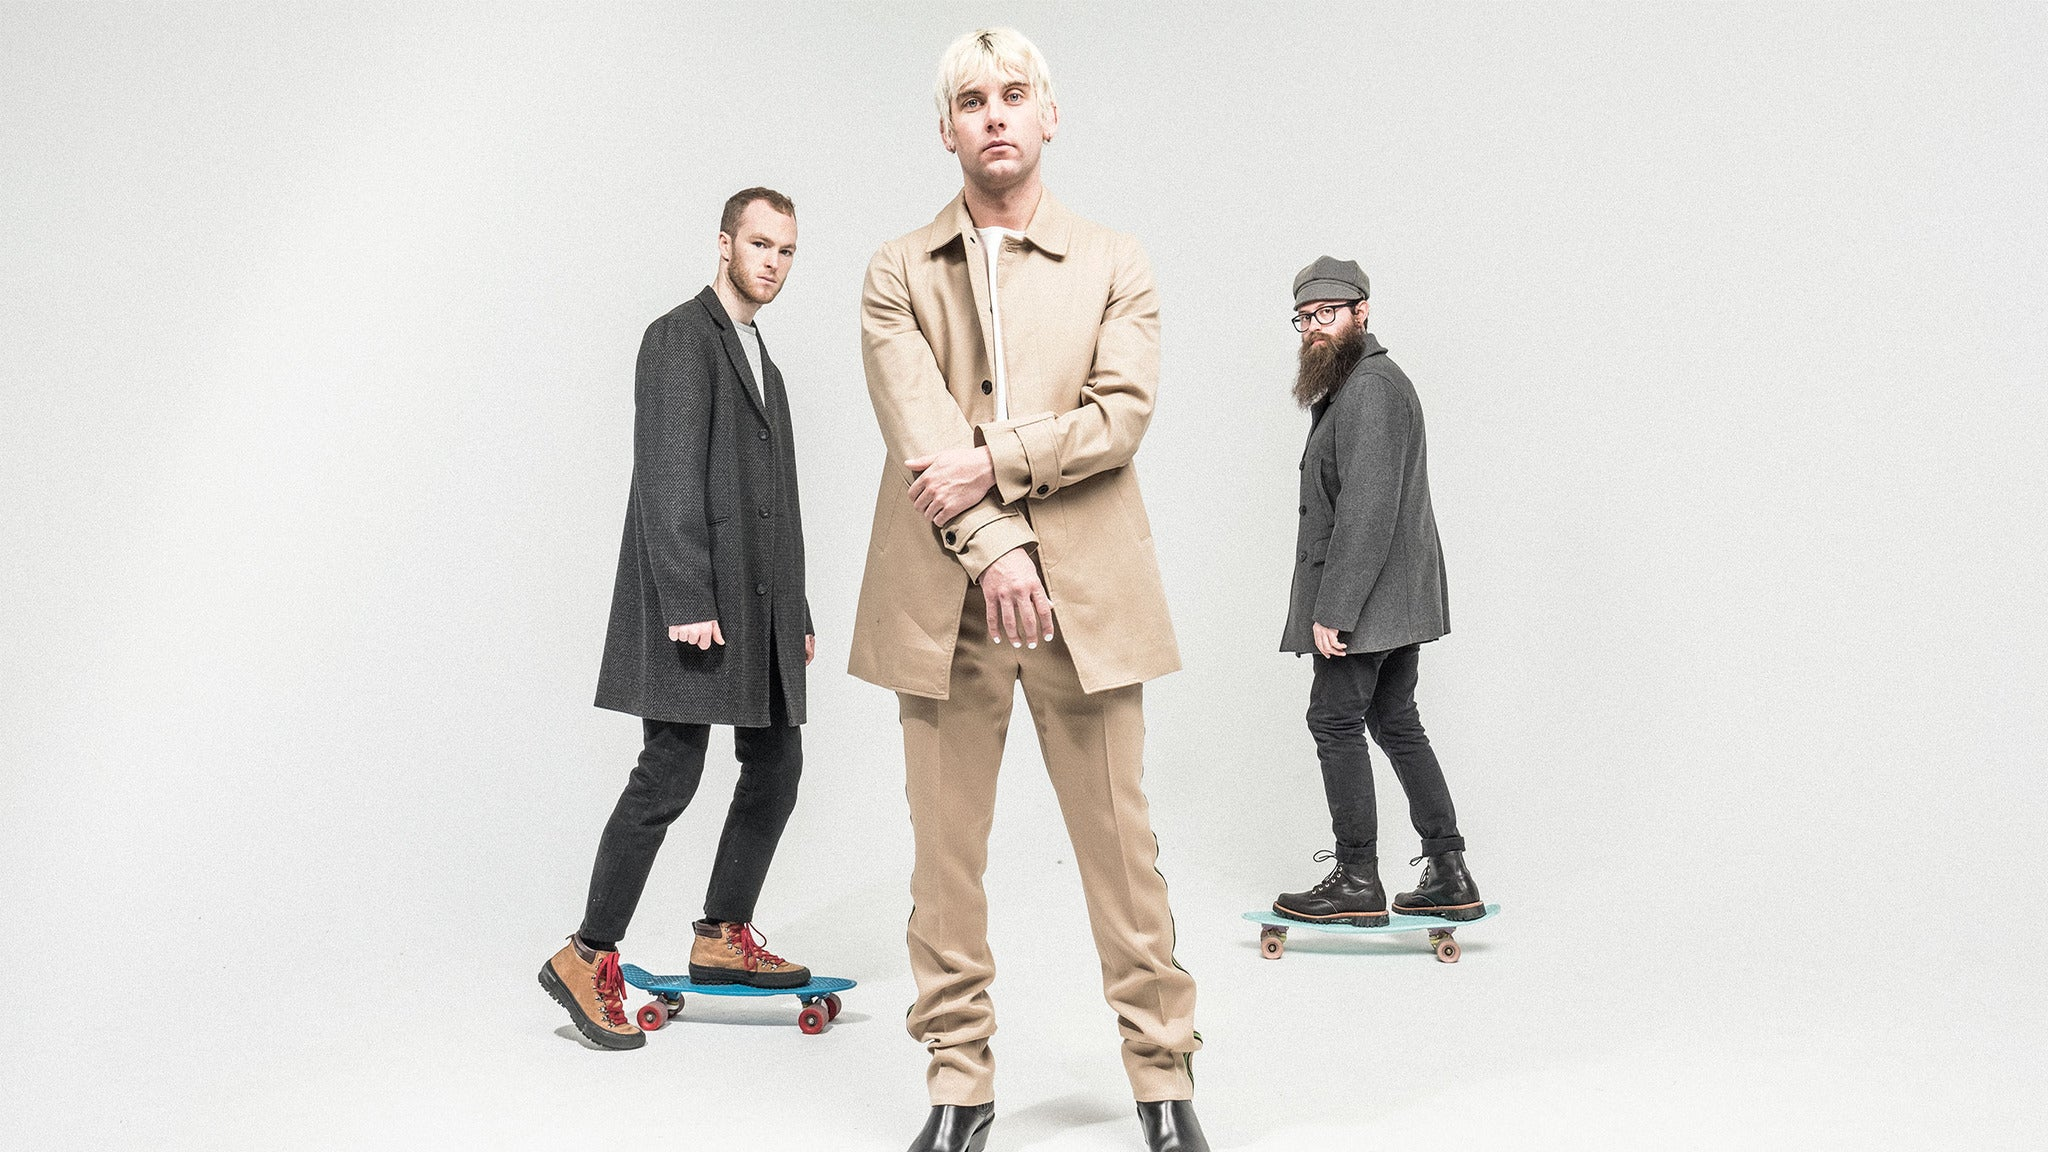 Judah & the Lion - Going to Mars Tour